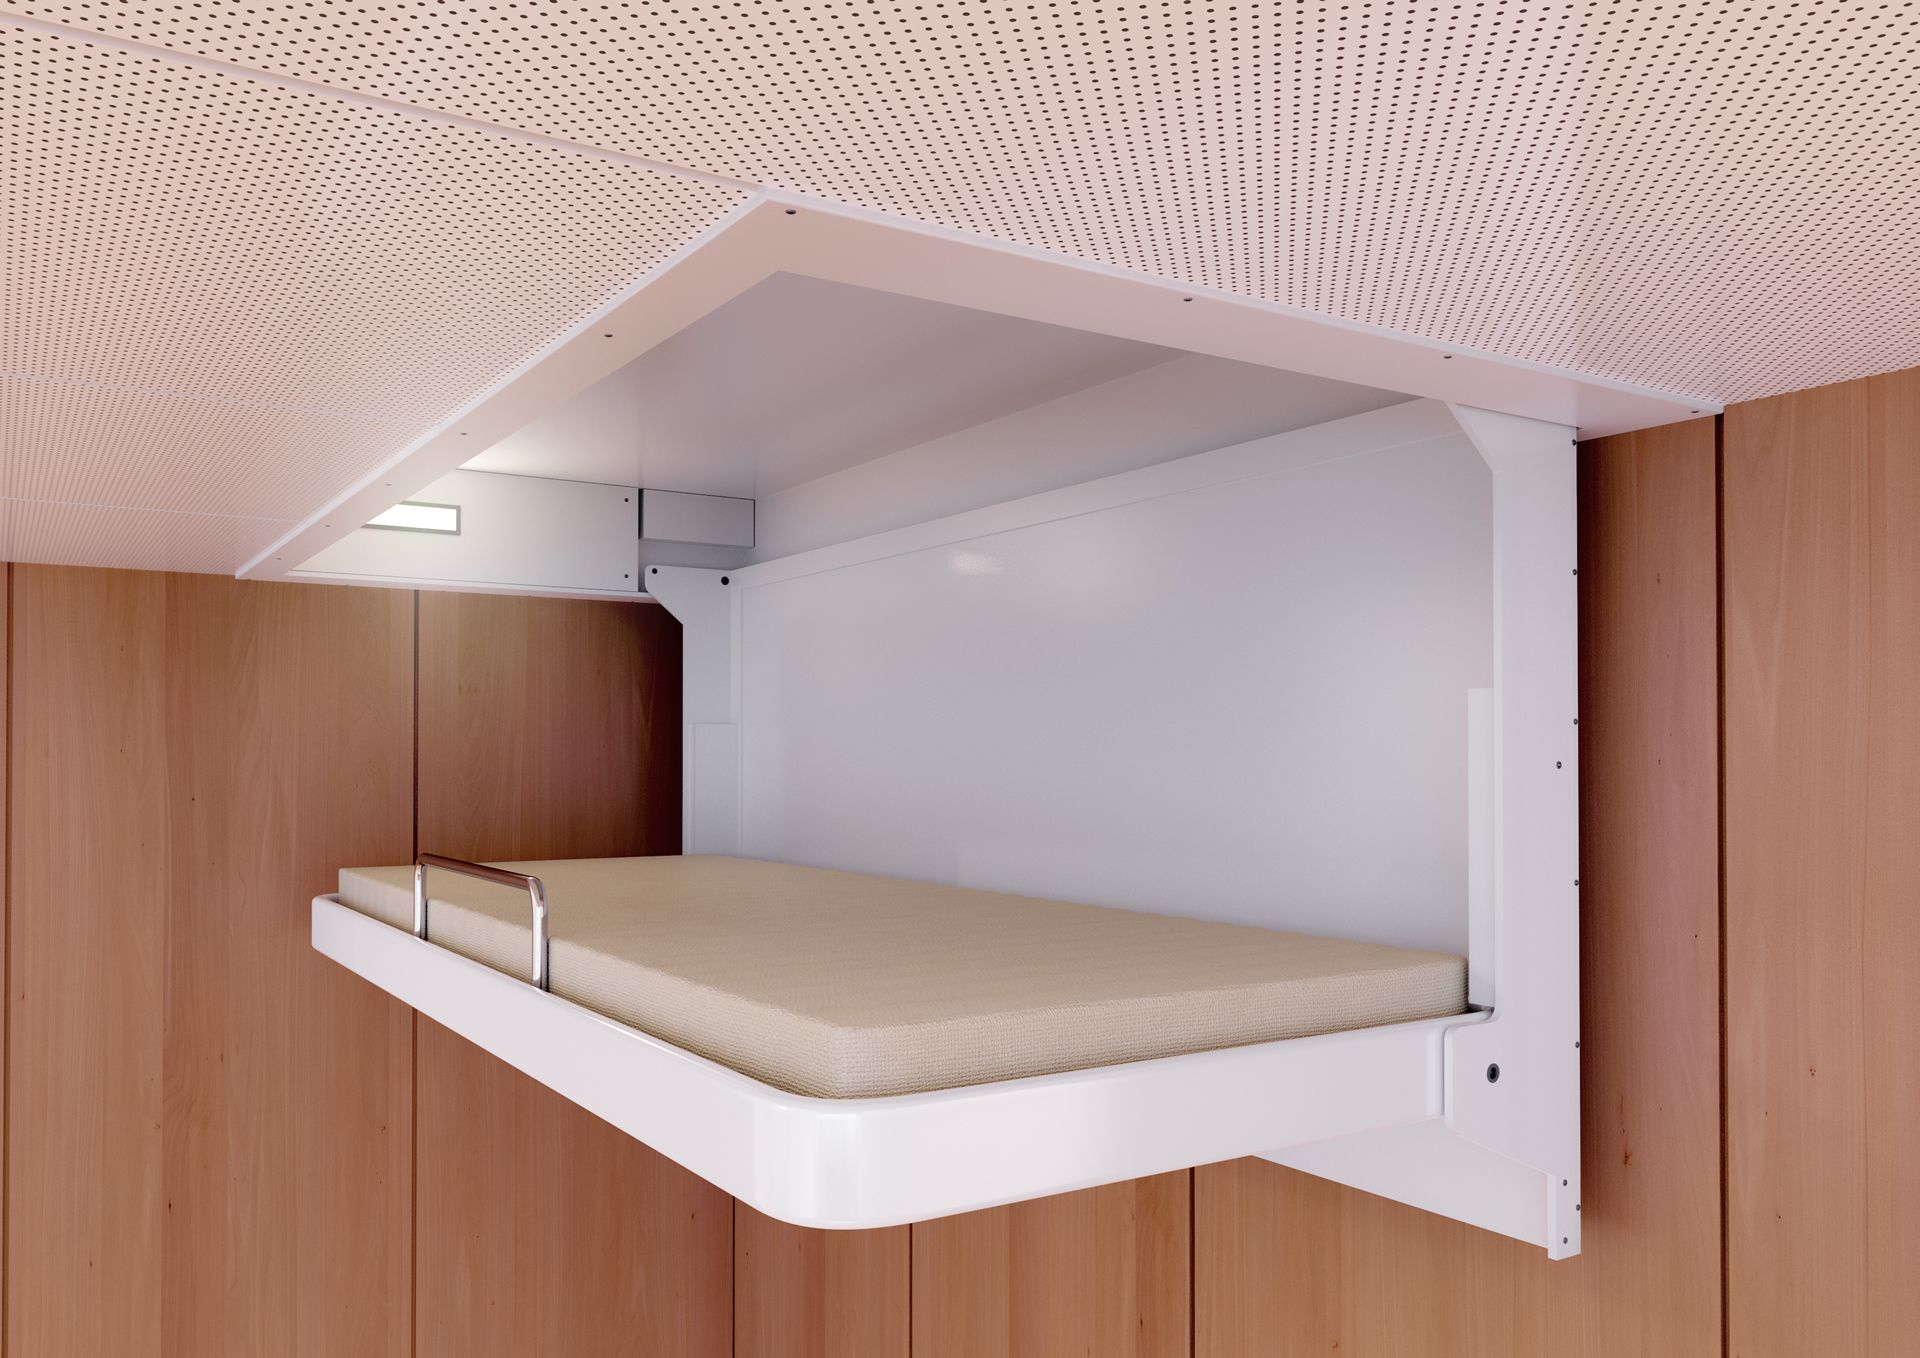 Unique Folding Ceiling Mounted Bed With Wooden Wall Decor Idea